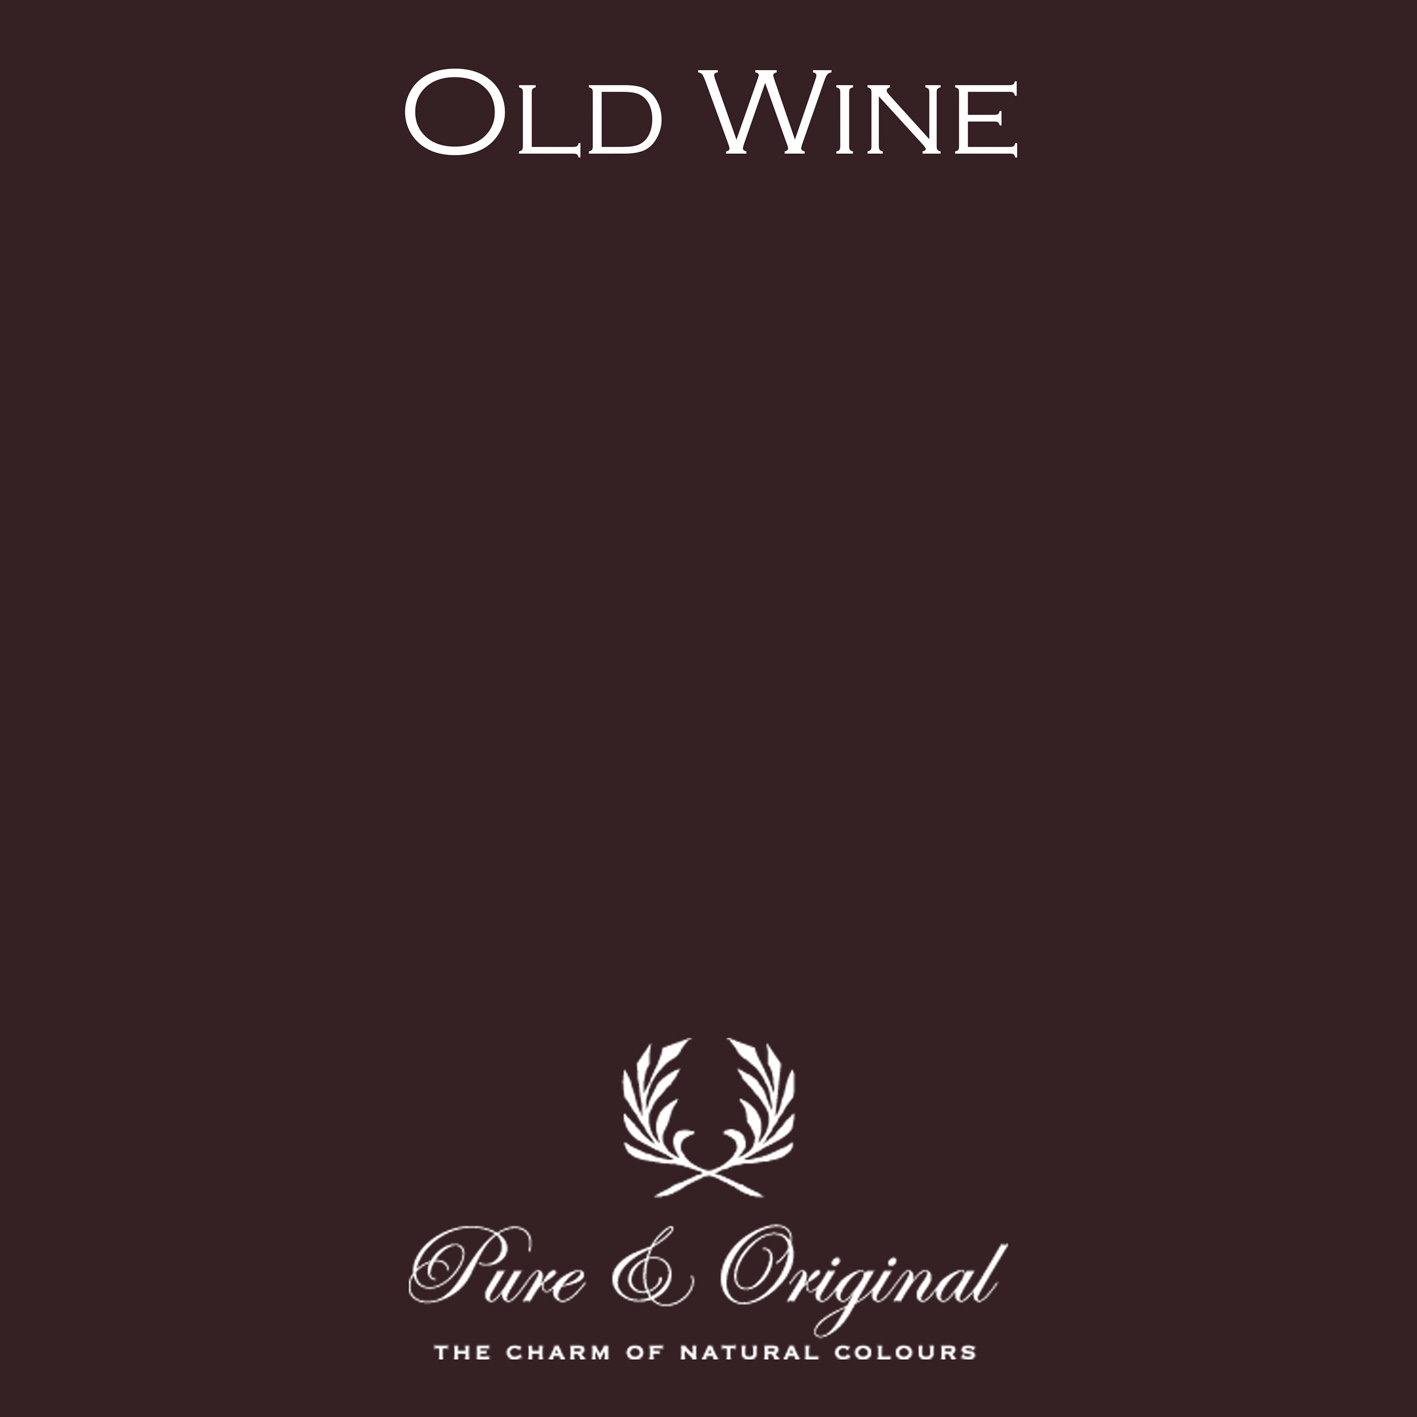 Old Wine Pure & Original